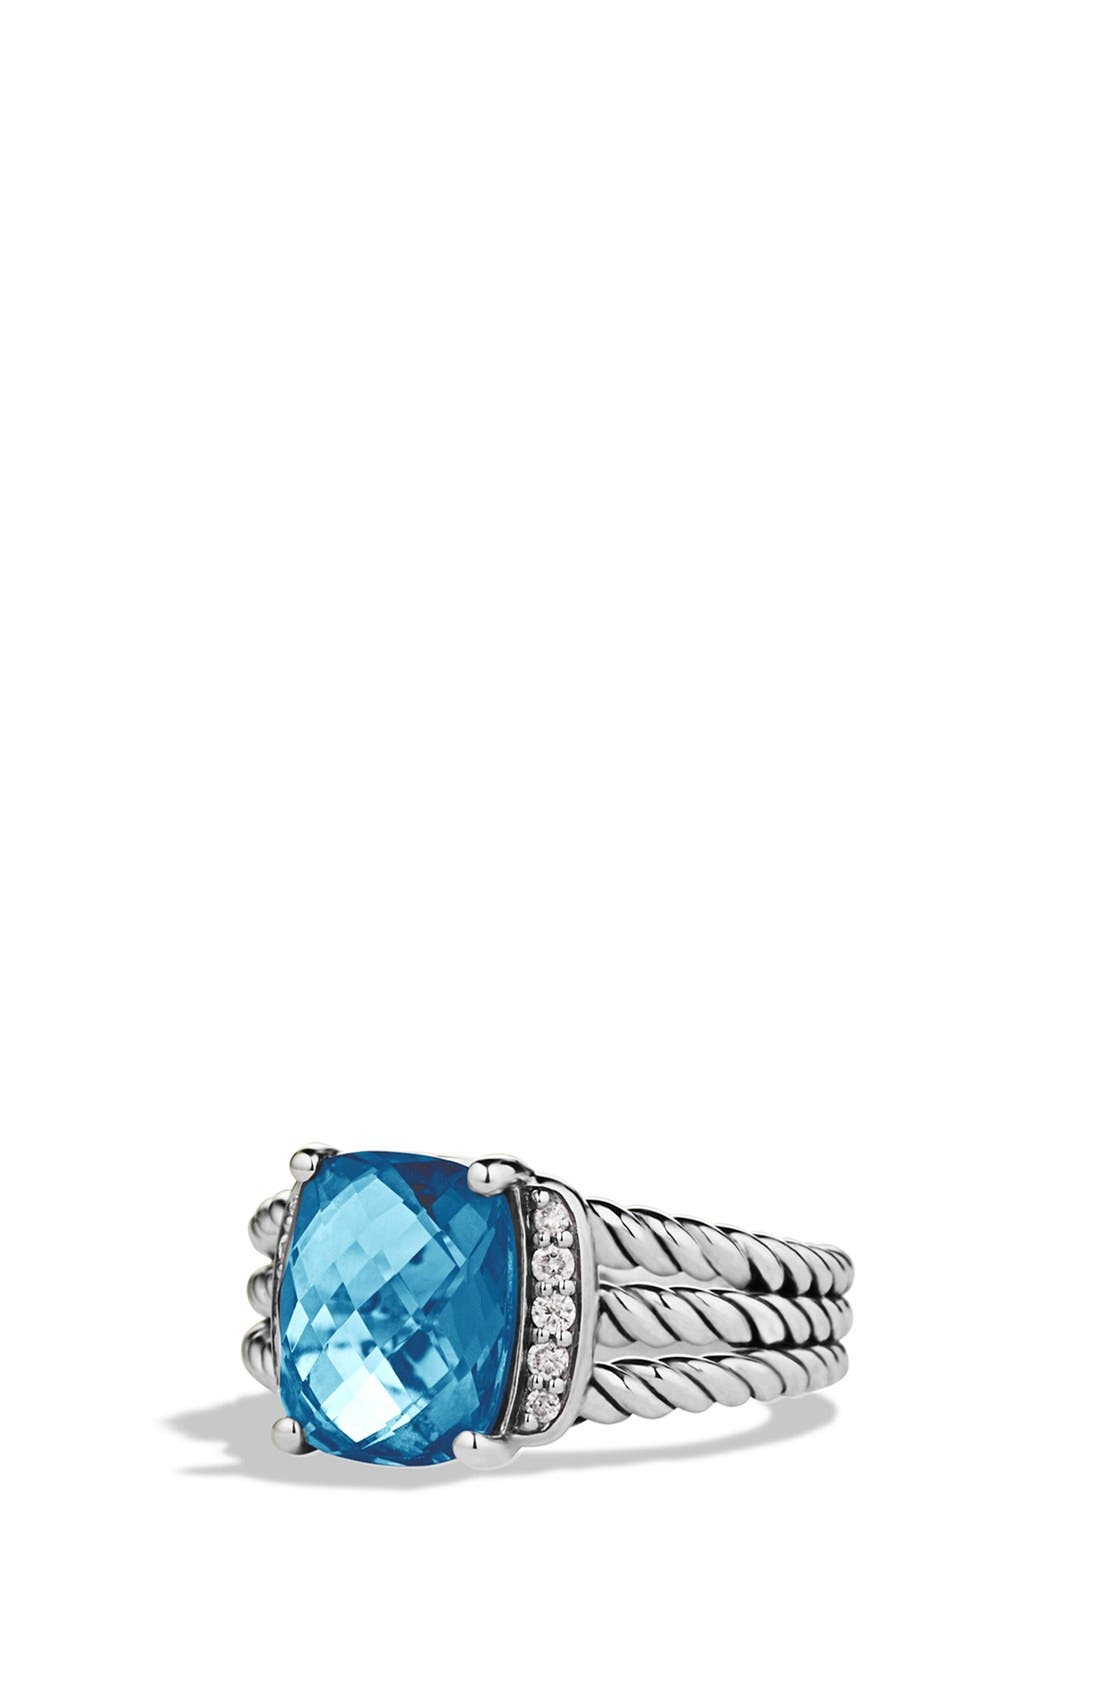 Alternate Image 1 Selected - David Yurman 'Wheaton' Petite Ring with Semiprecious Stone & Diamonds